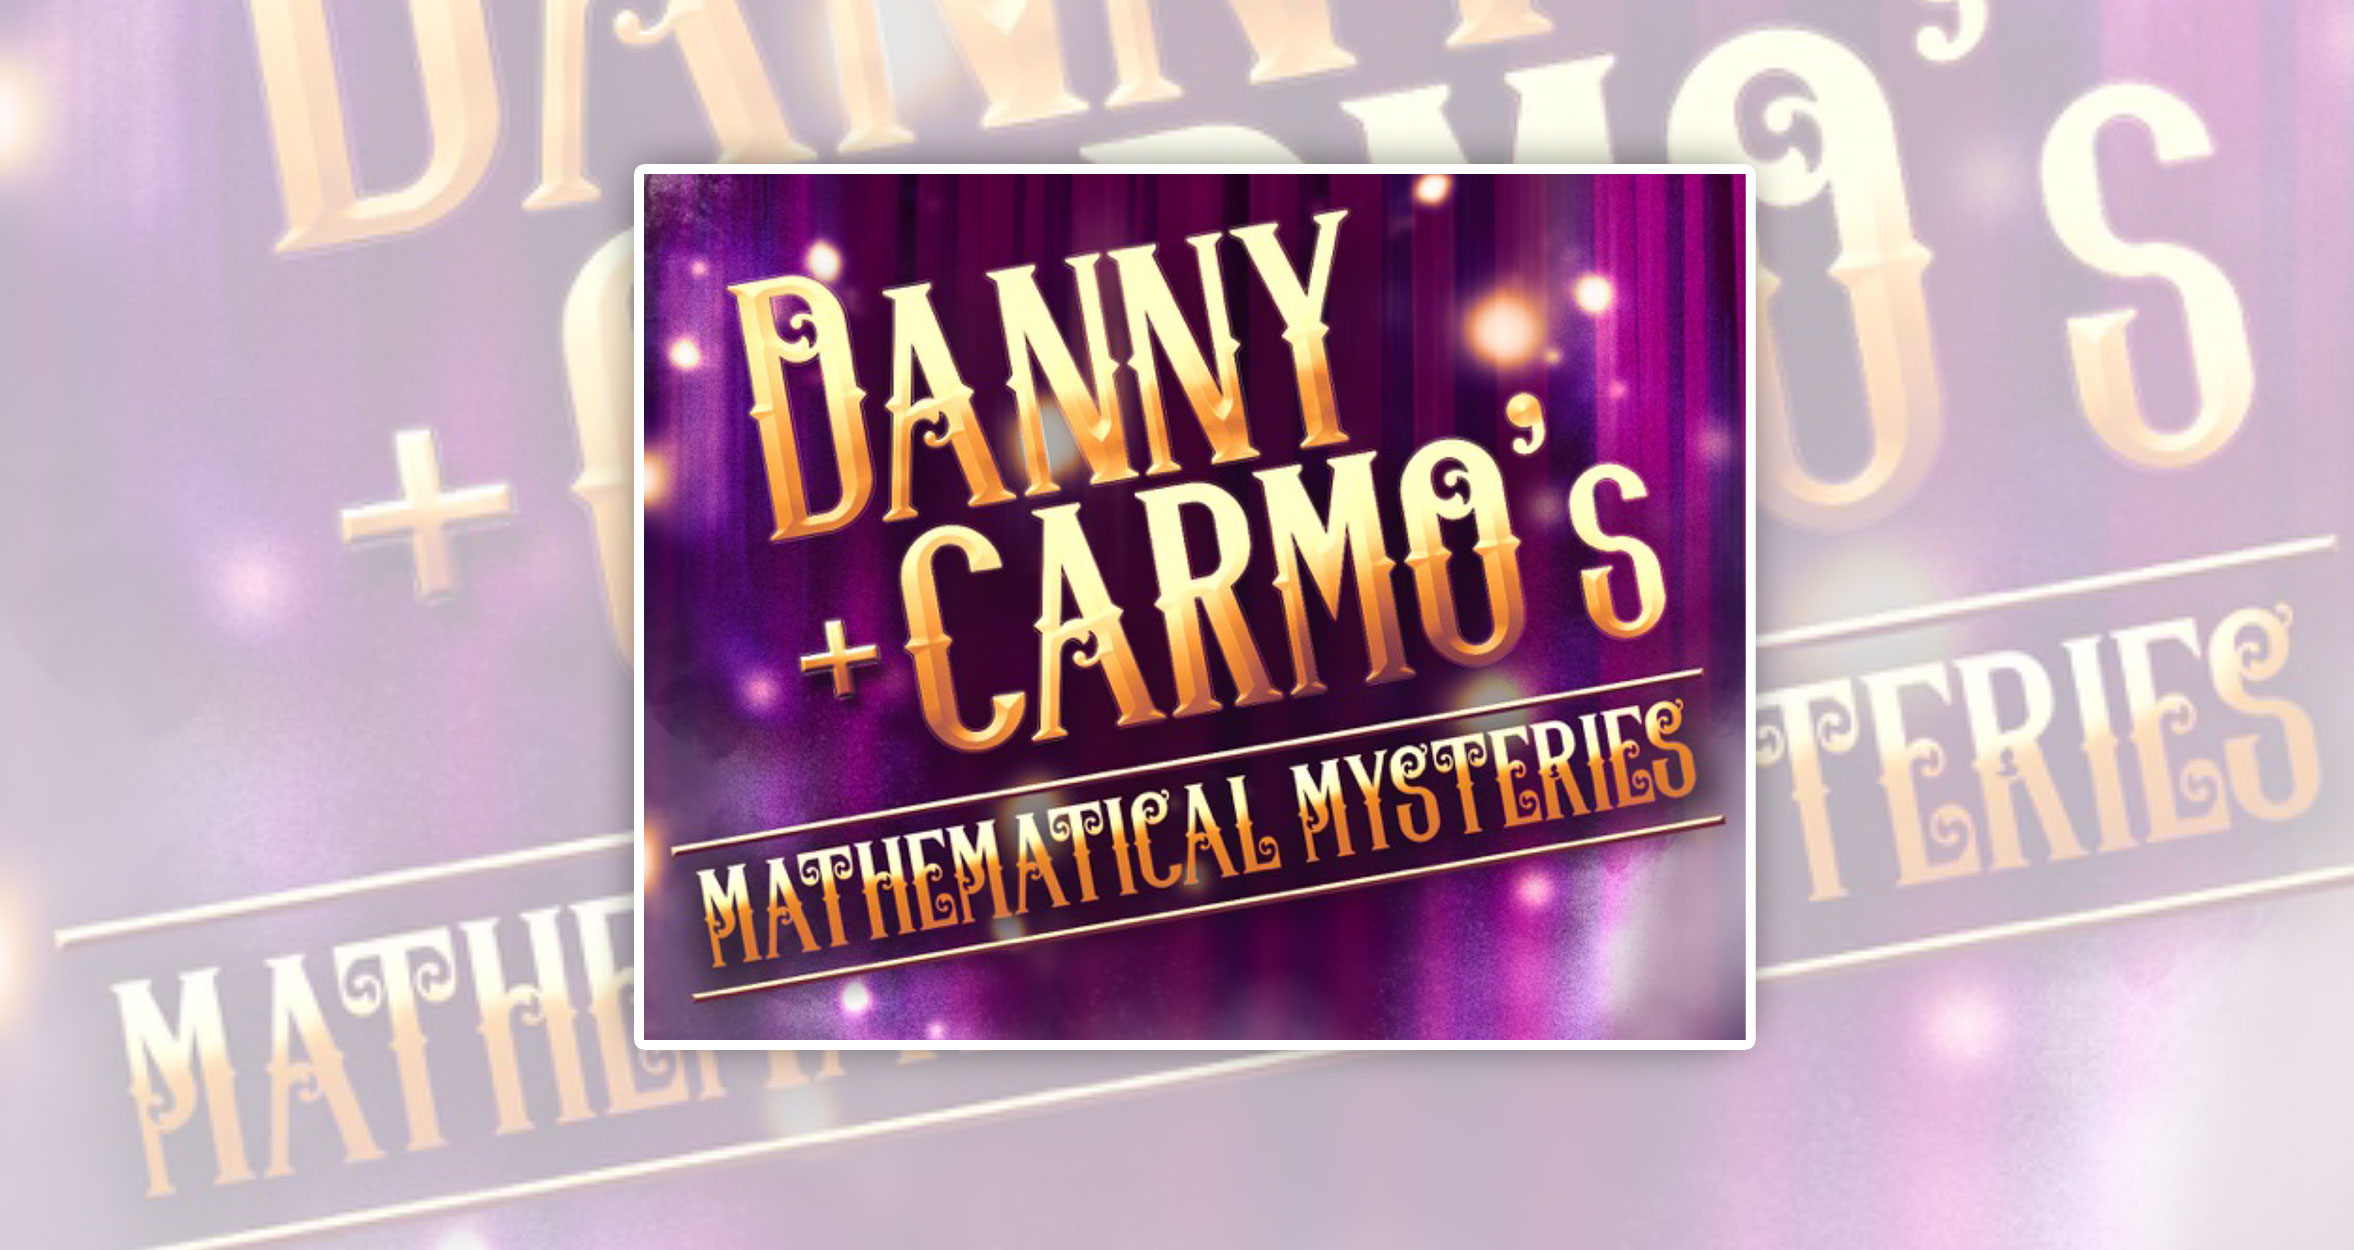 Danny Carmo's Mathematical Mysteries